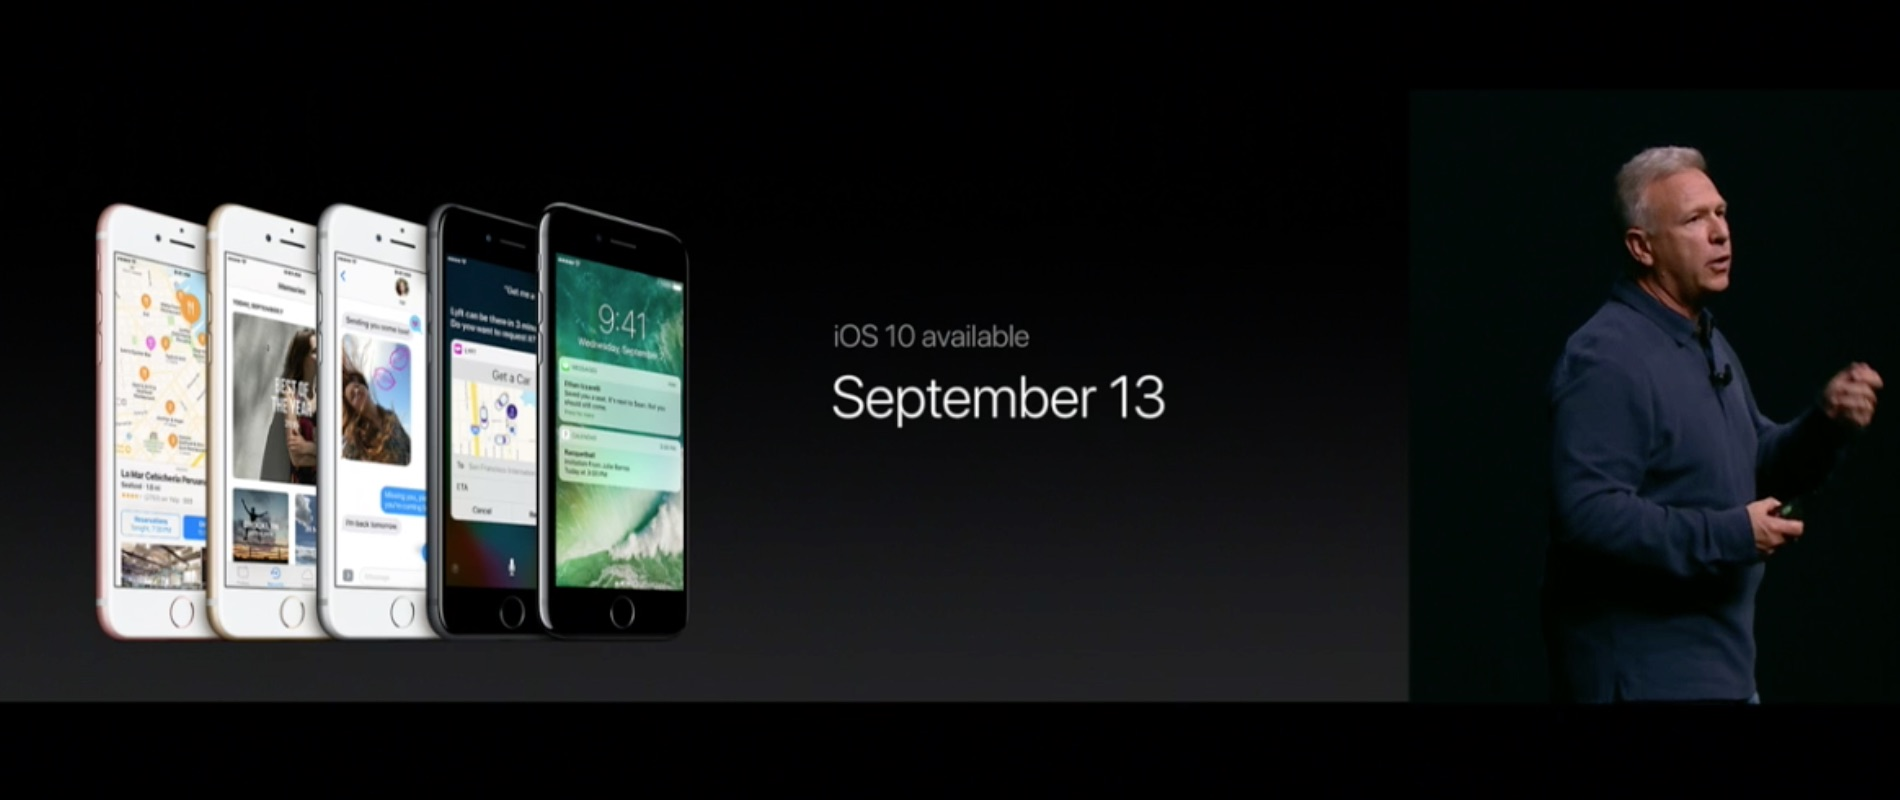 iphone7-plus-special-events-2016-sep-43